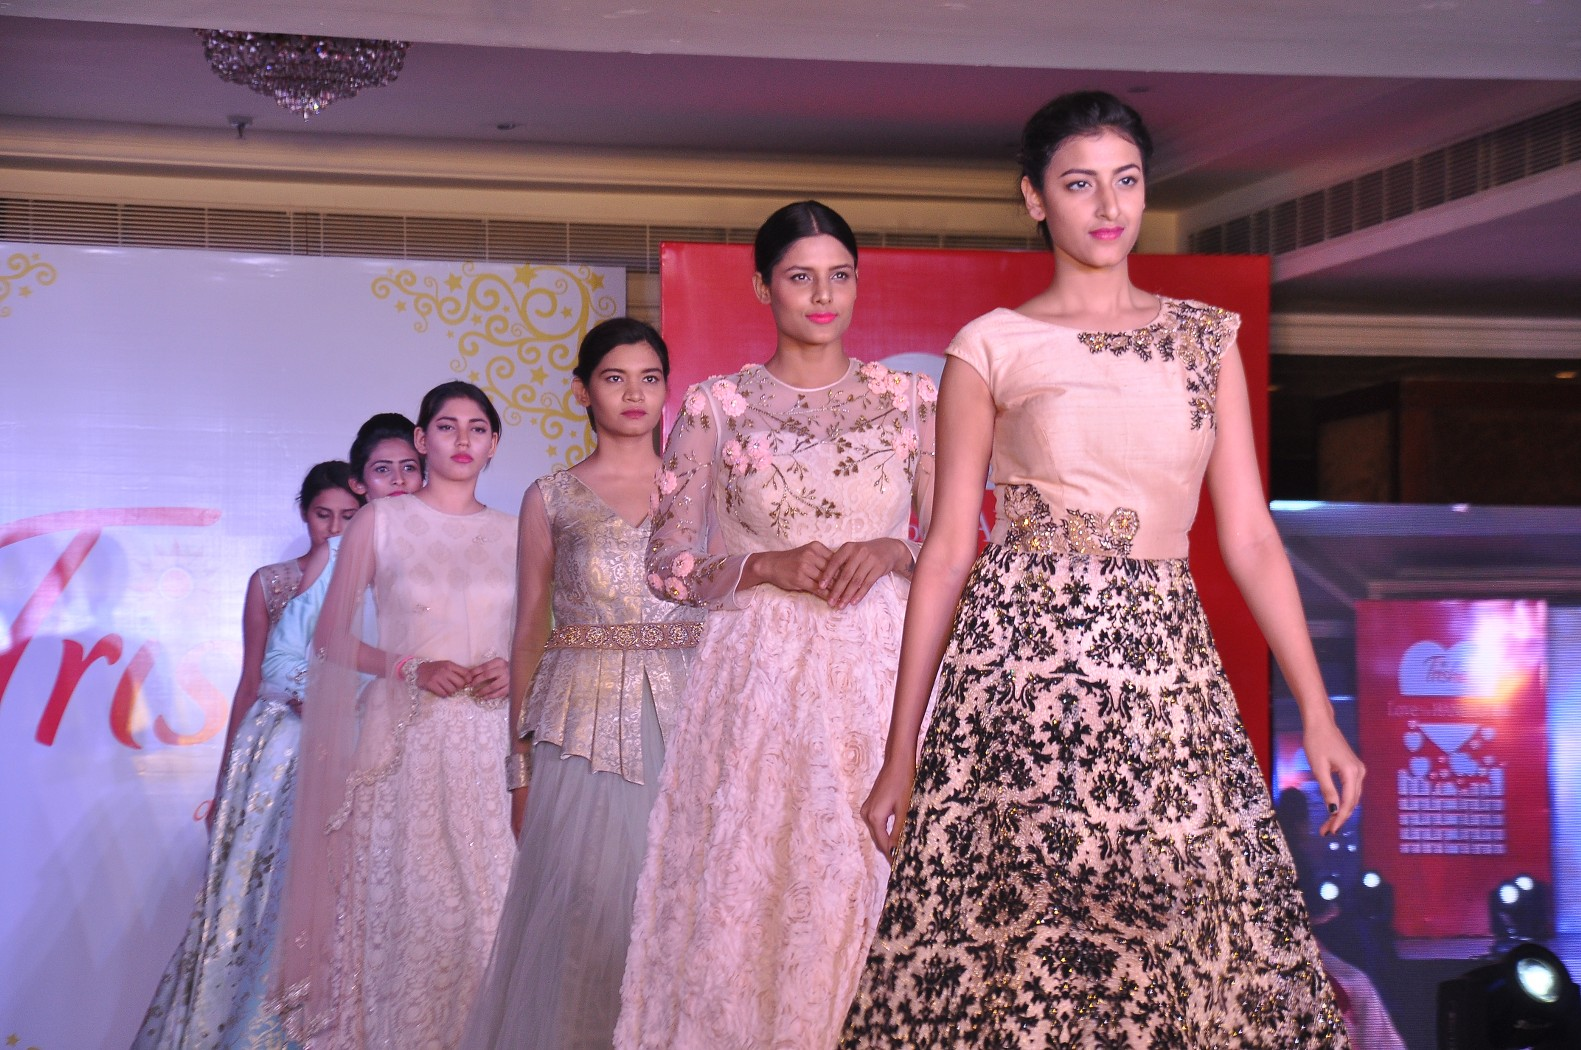 Celebs and Models Dazzle In Elegant Outfit   Love For Handloom Love For Handloom Celebs and Models Dazzle In Elegant Outfit   Love For Handloom Praneetha Love For Handloom 186